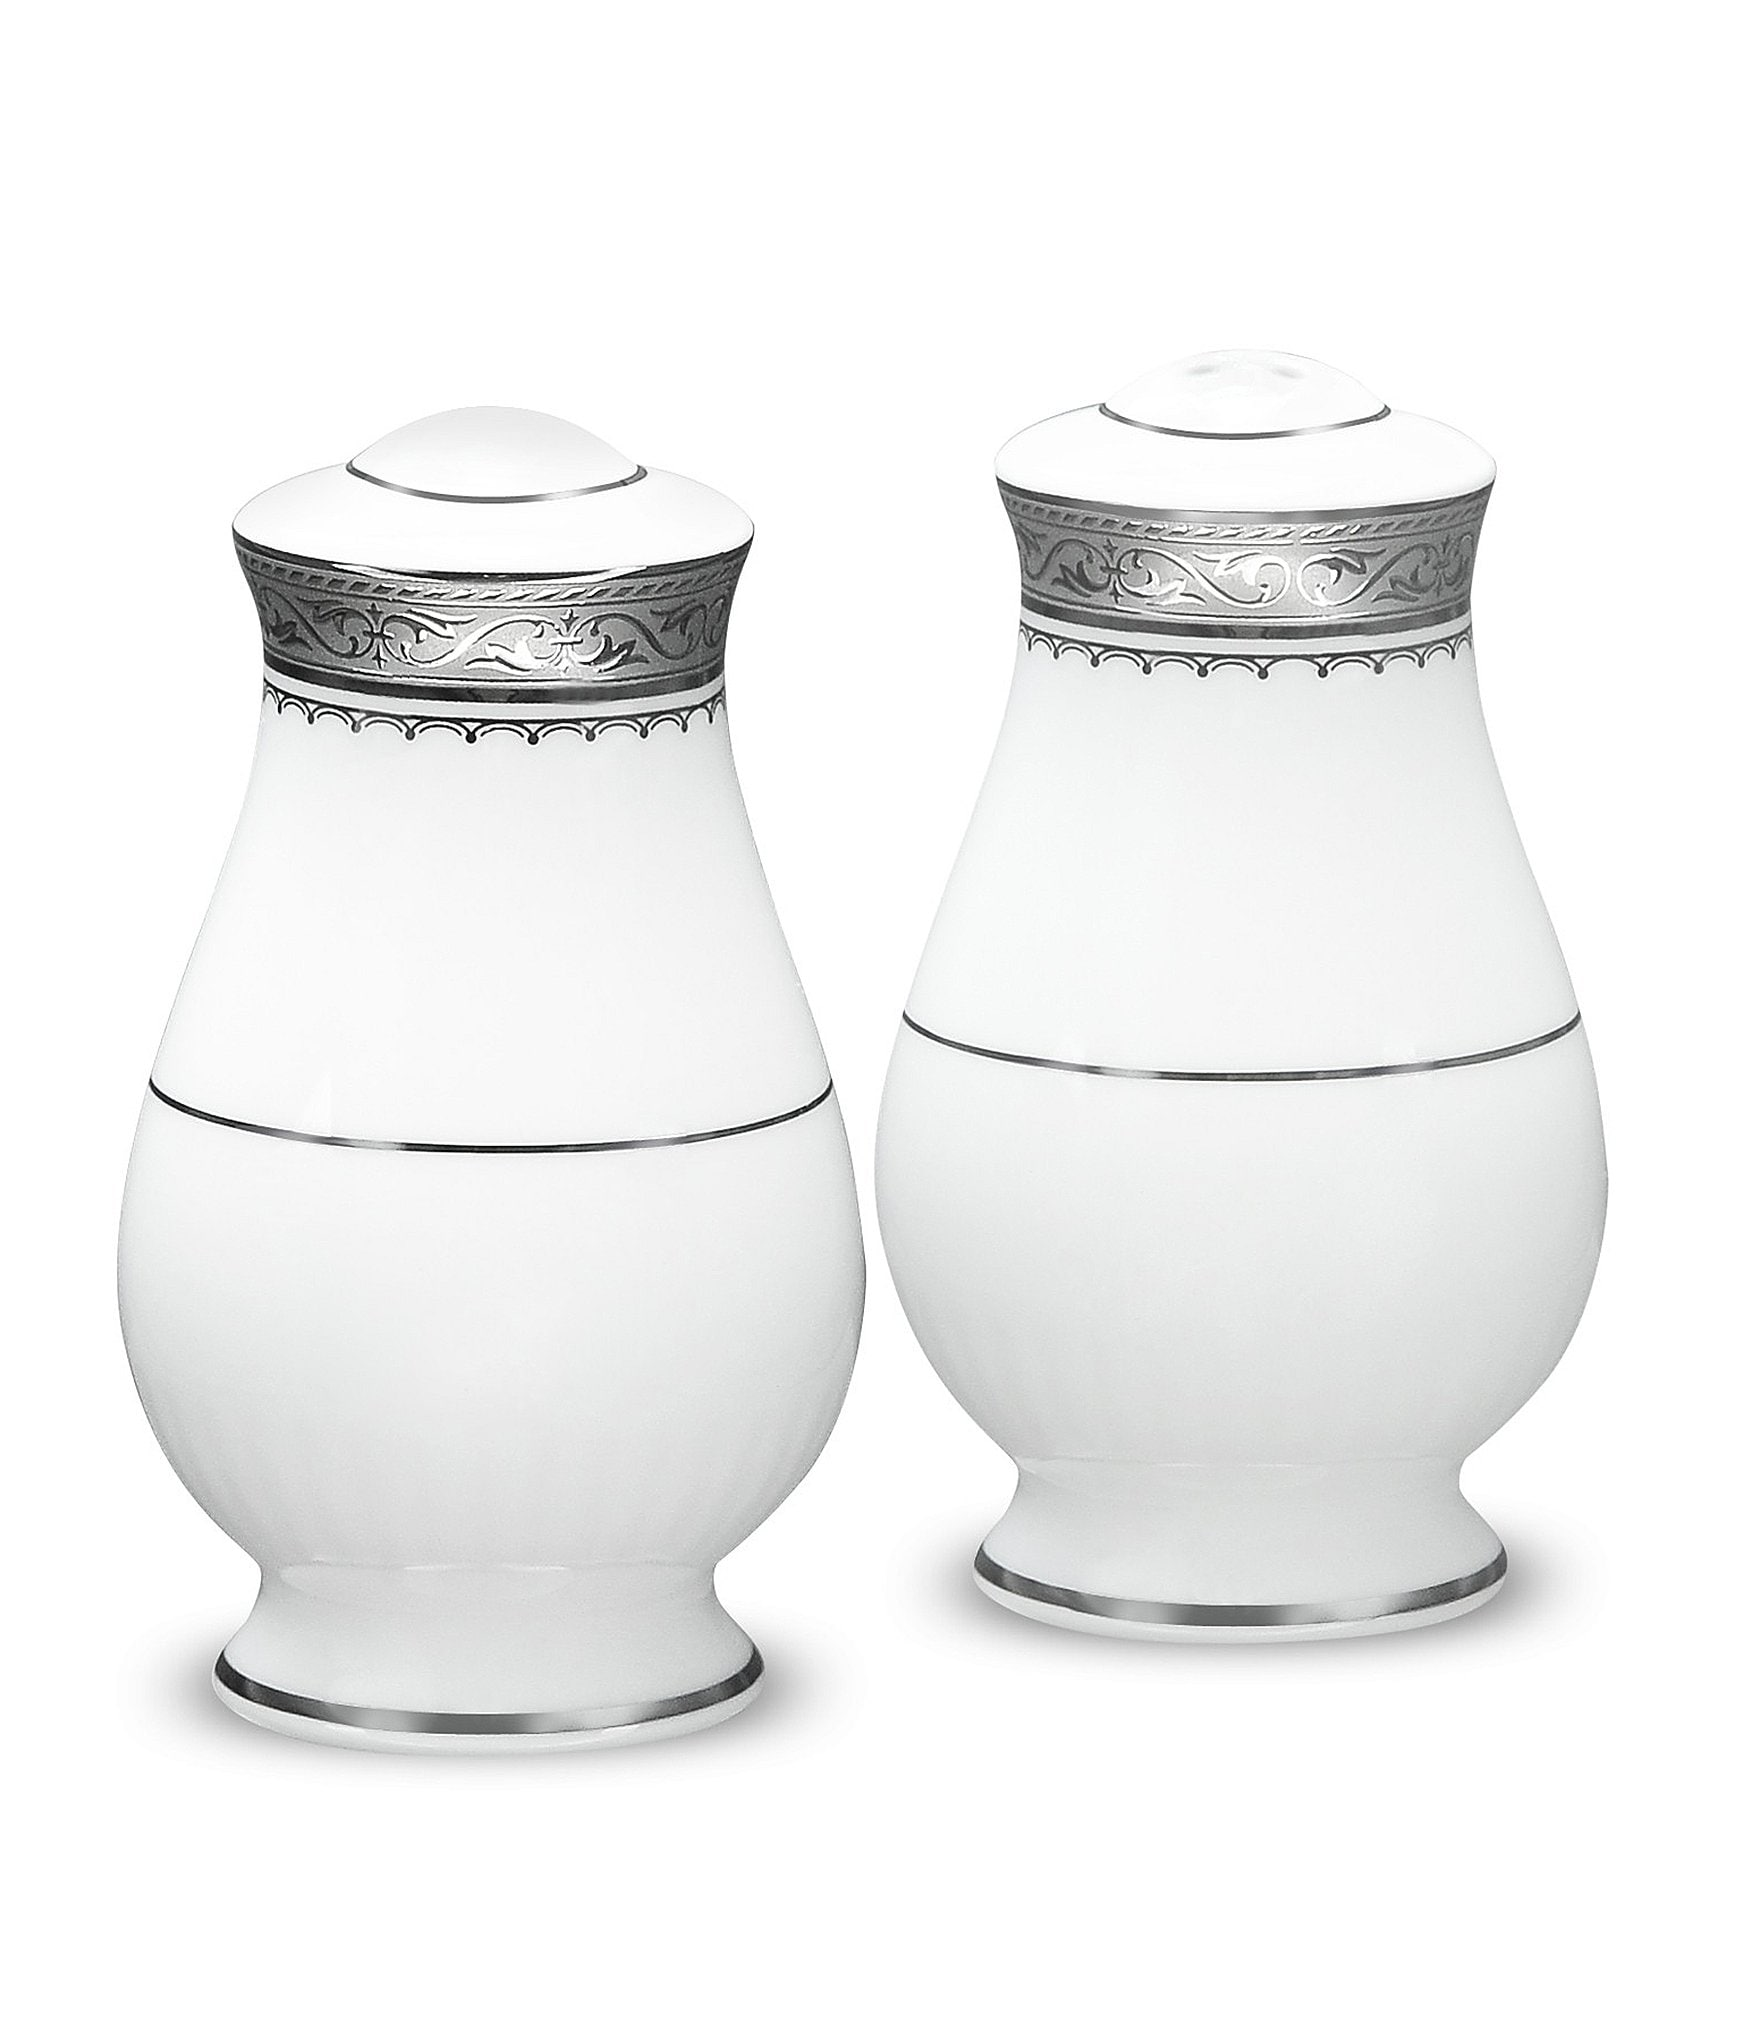 Salt & Pepper Shakers